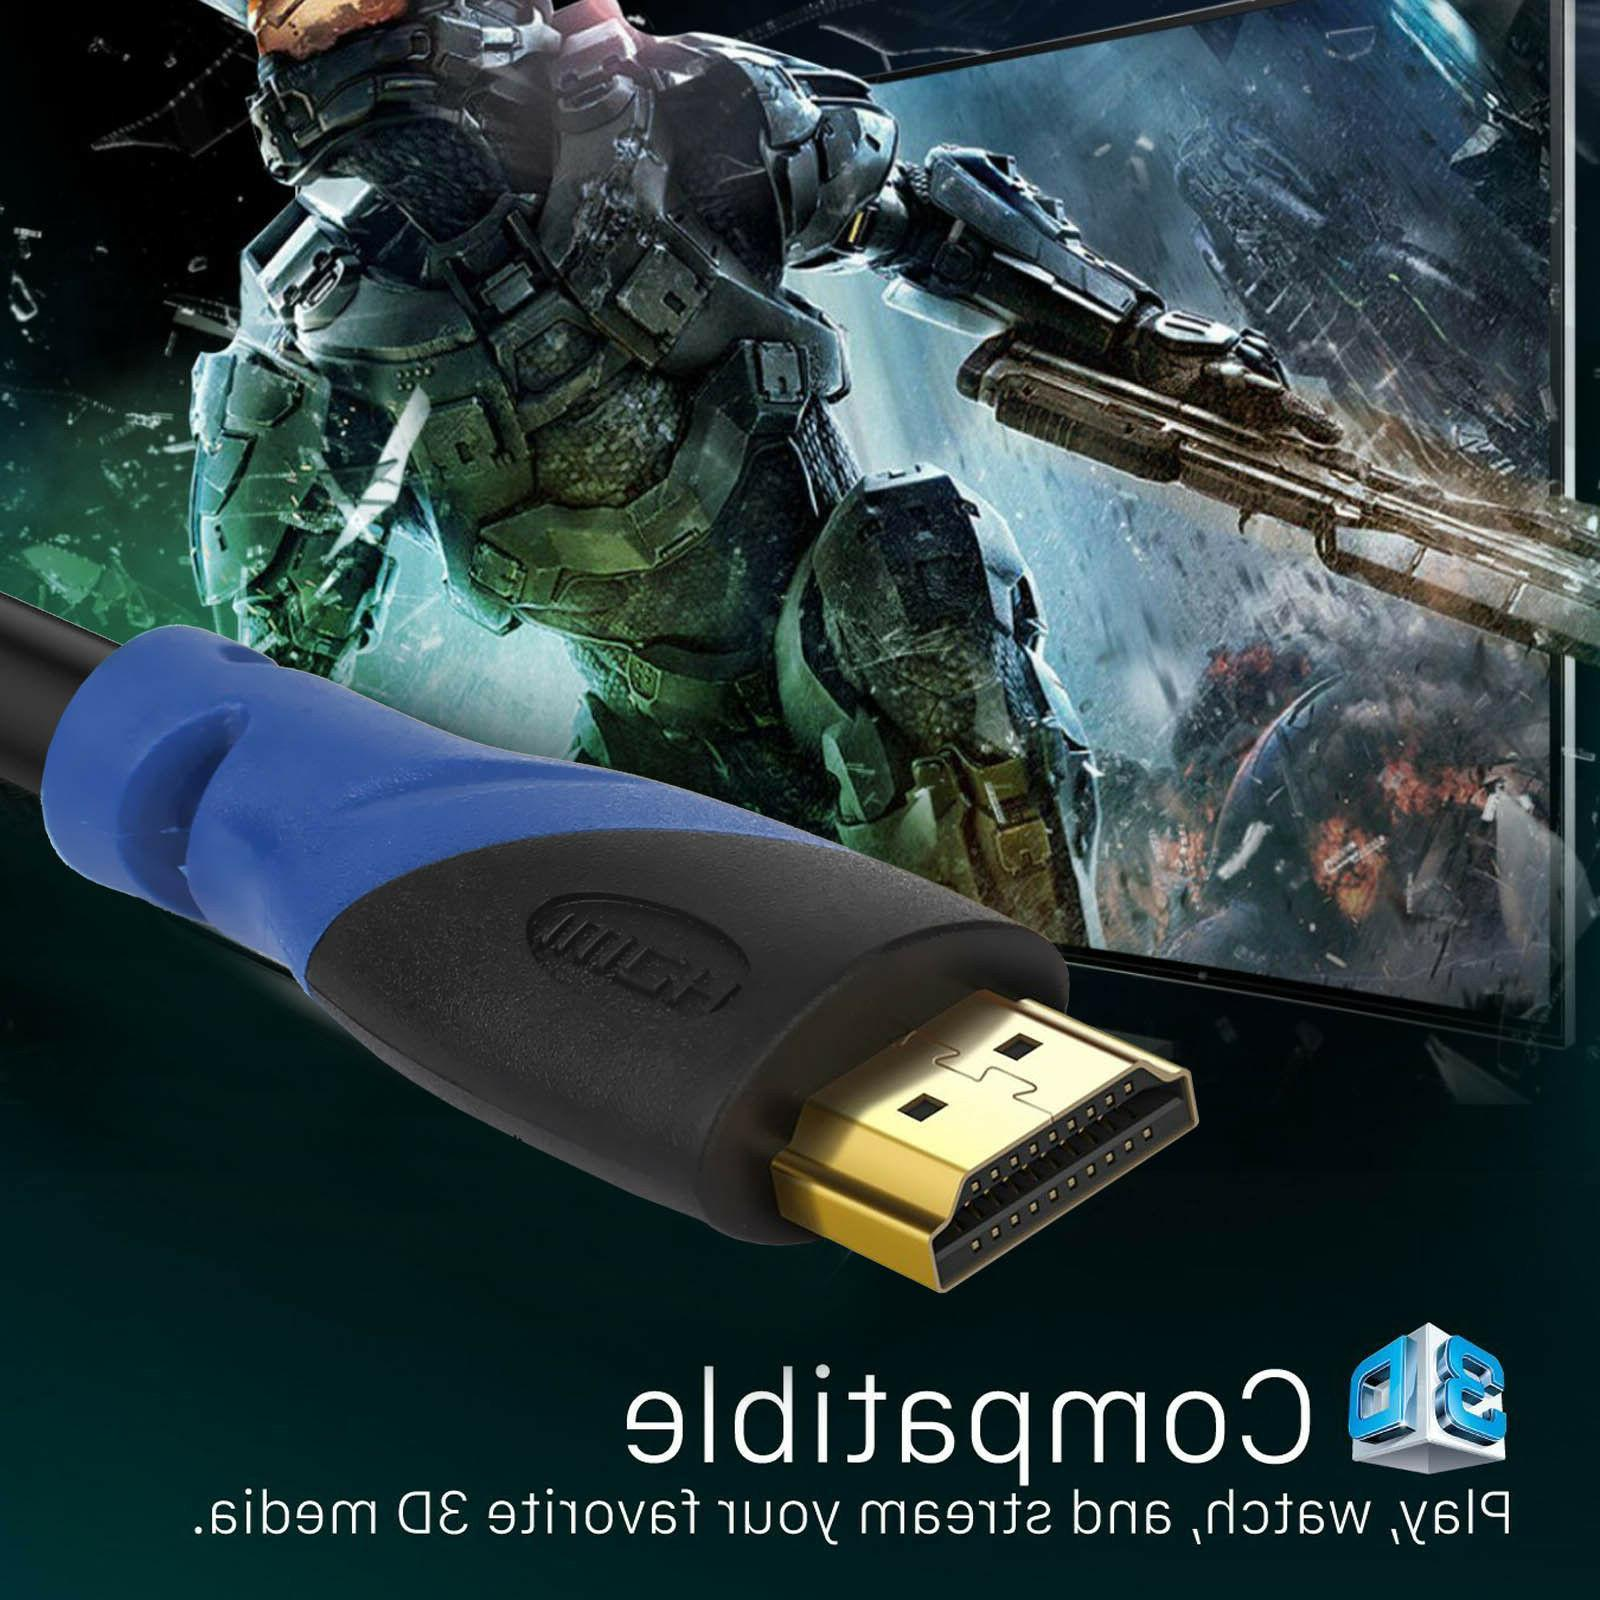 4K High Cable 2.0 Version 2.2 - Rated